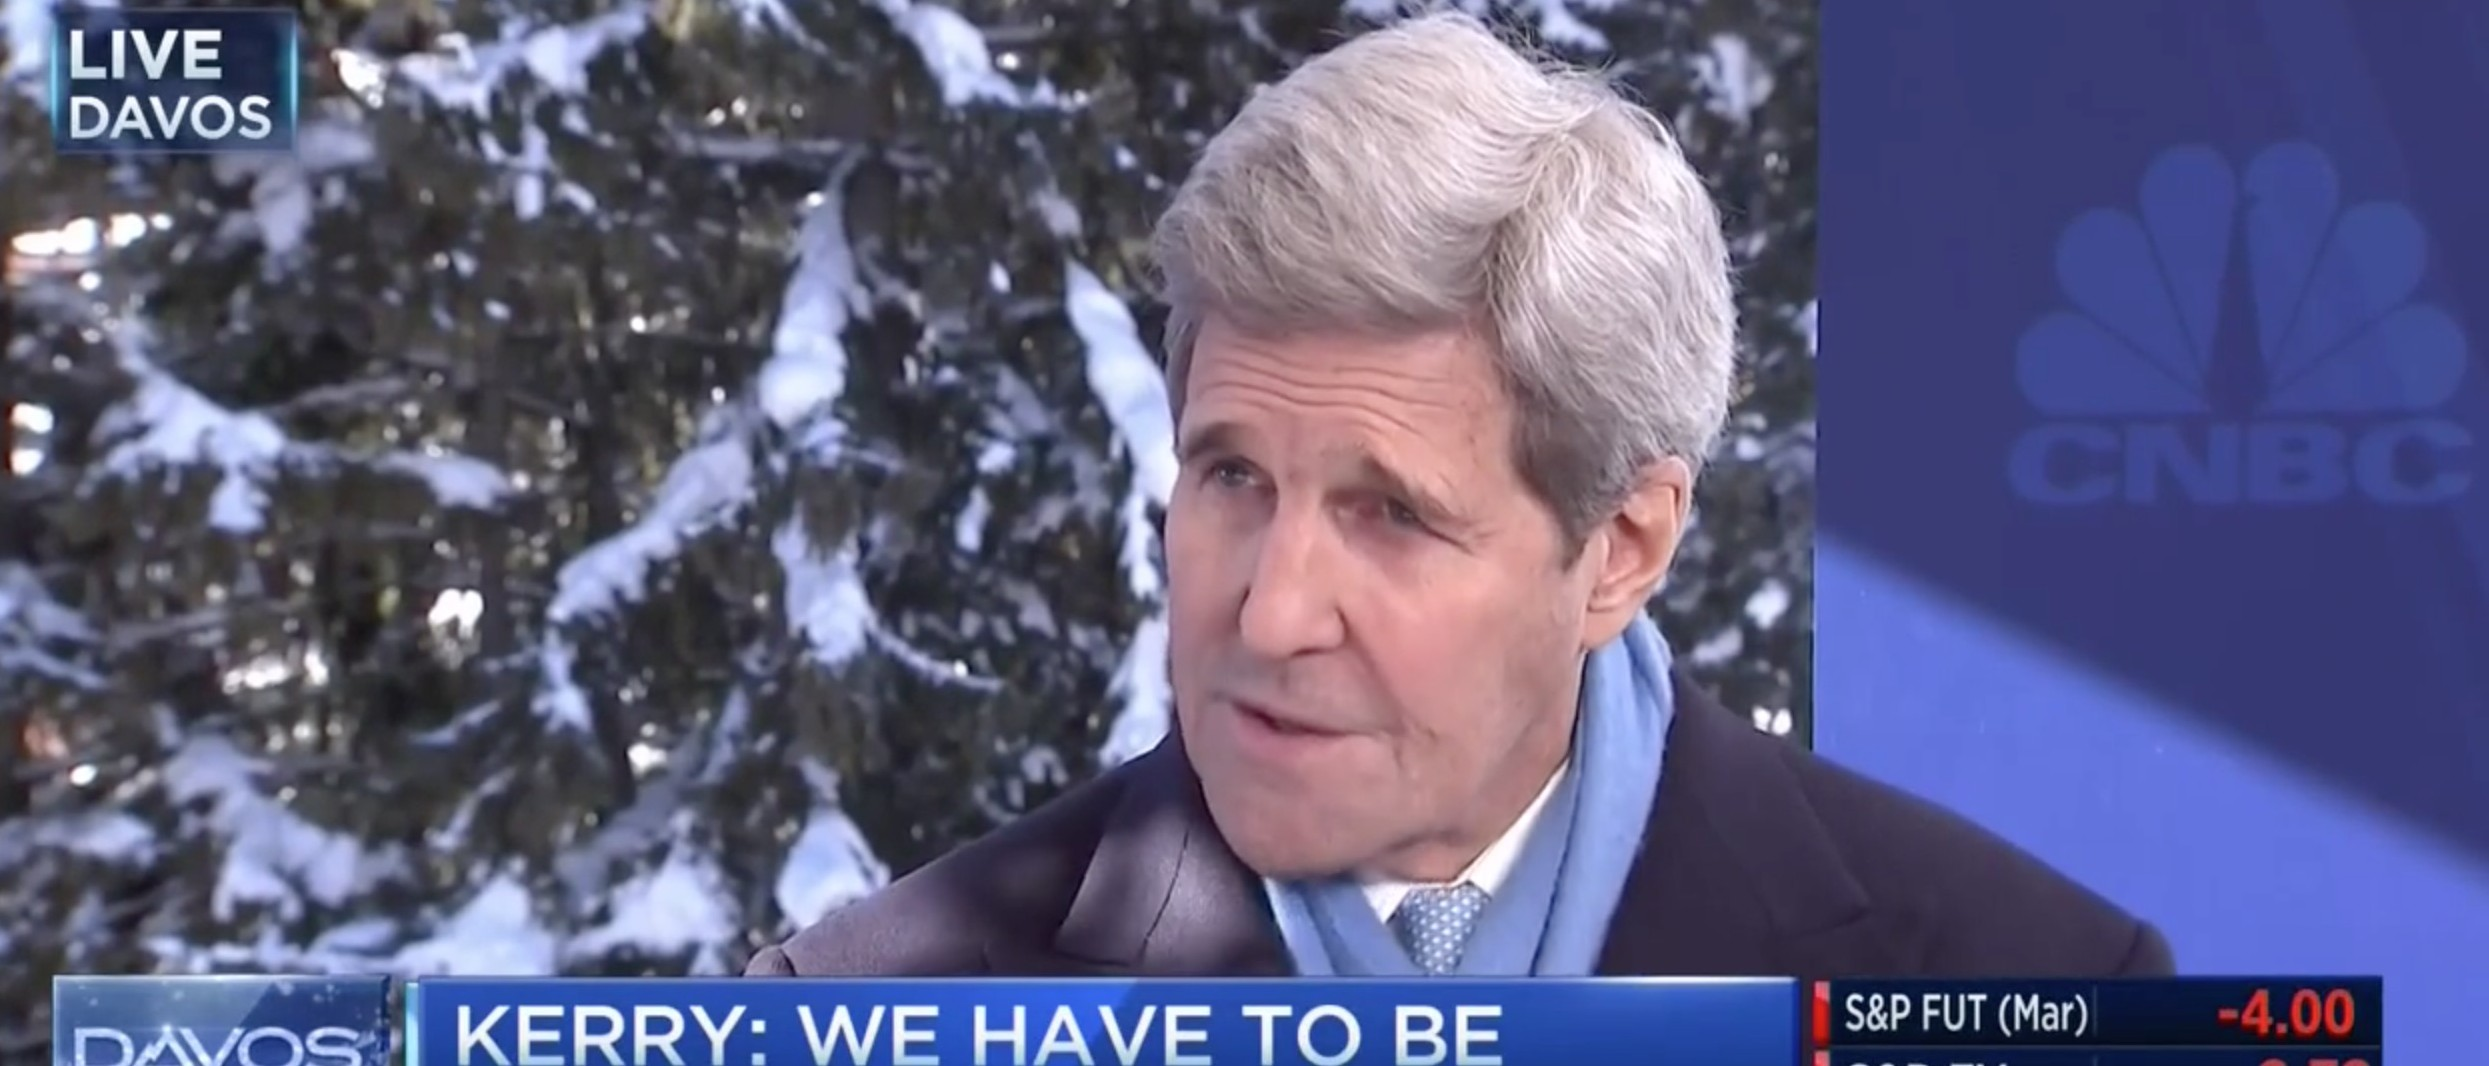 Kerry-Acknowledges-The-Obvious-Iranian-Sanctions-Relief-Funds-Could-End-Up-In-Terrorists-Hands-screen-shot-CNBC-e1453393939106.jpg